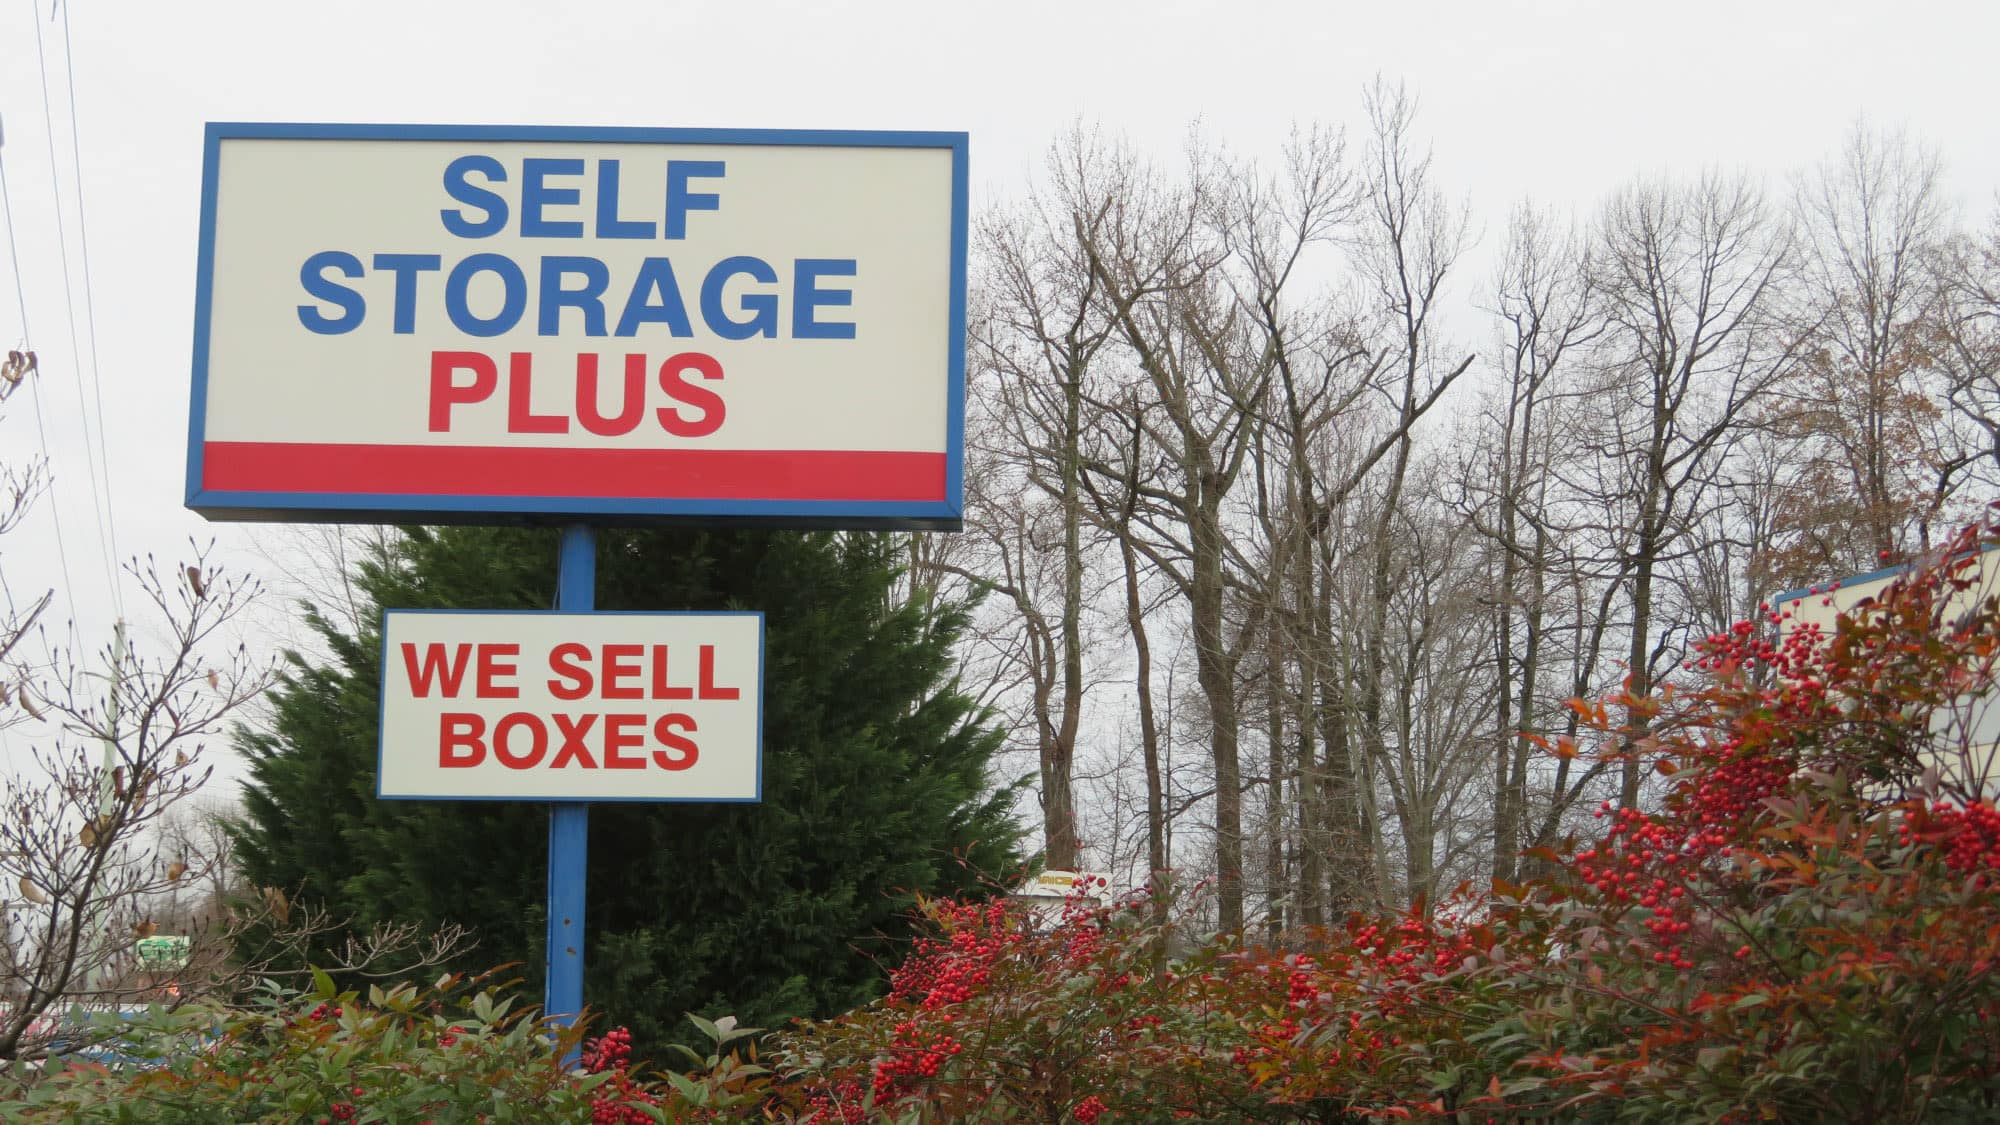 Welcome sign at Self Storage Plus in Gambrills, MD